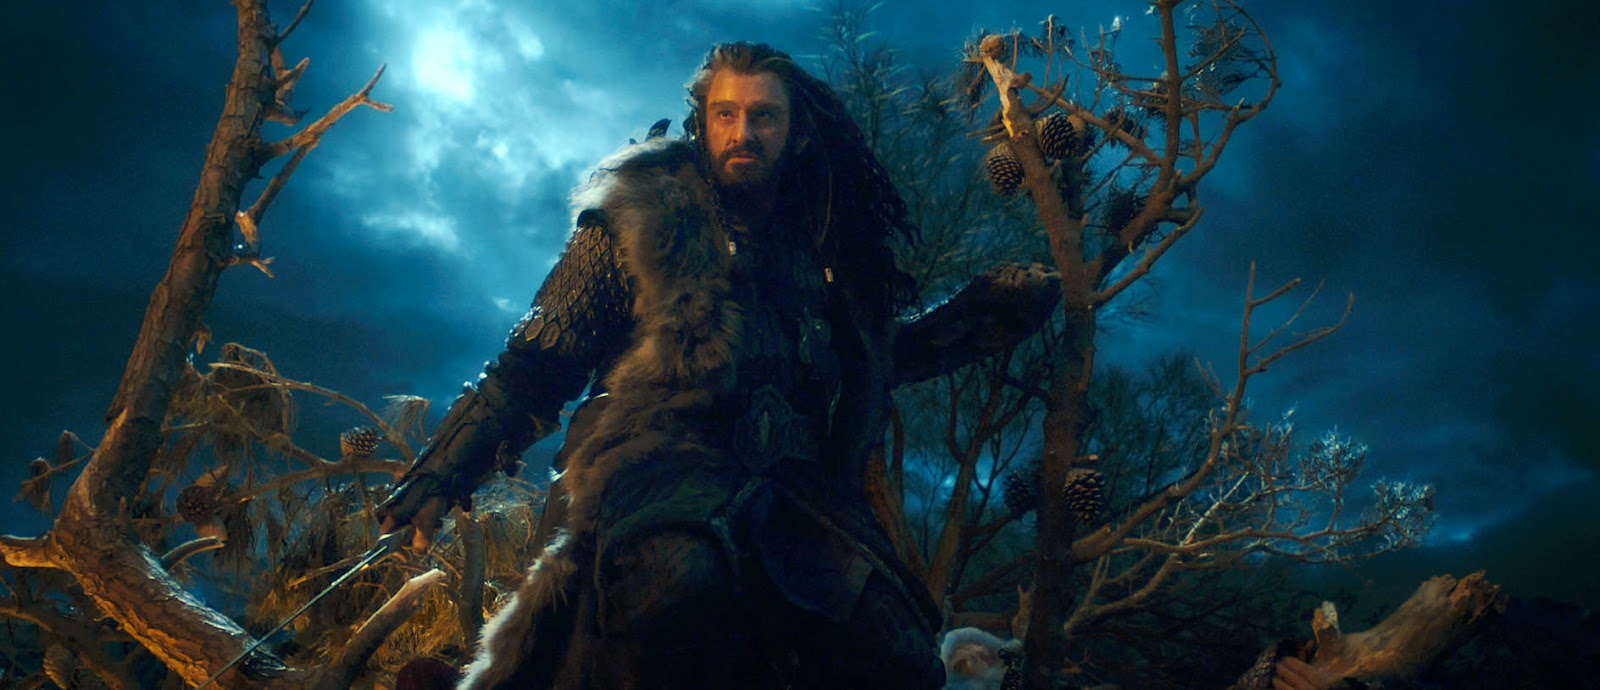 thorin oakenshield king pics